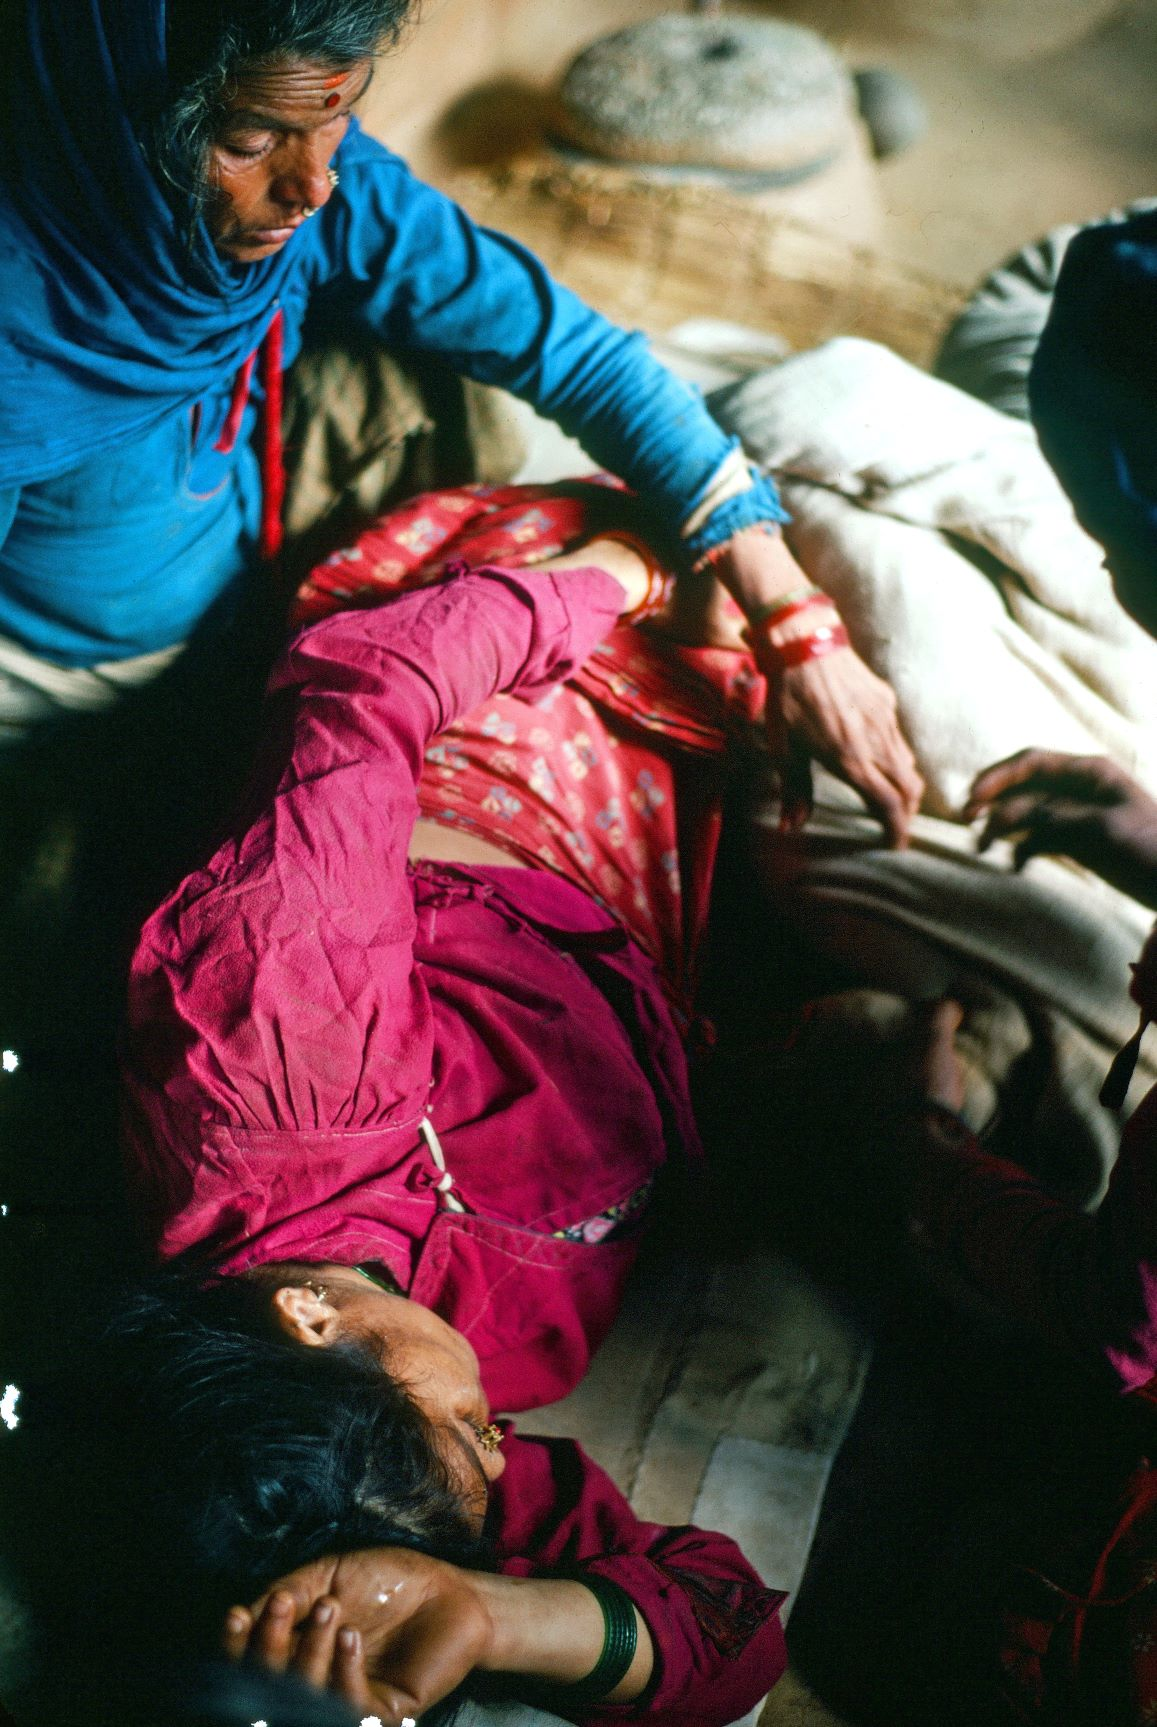 image of a mother in distress in labor